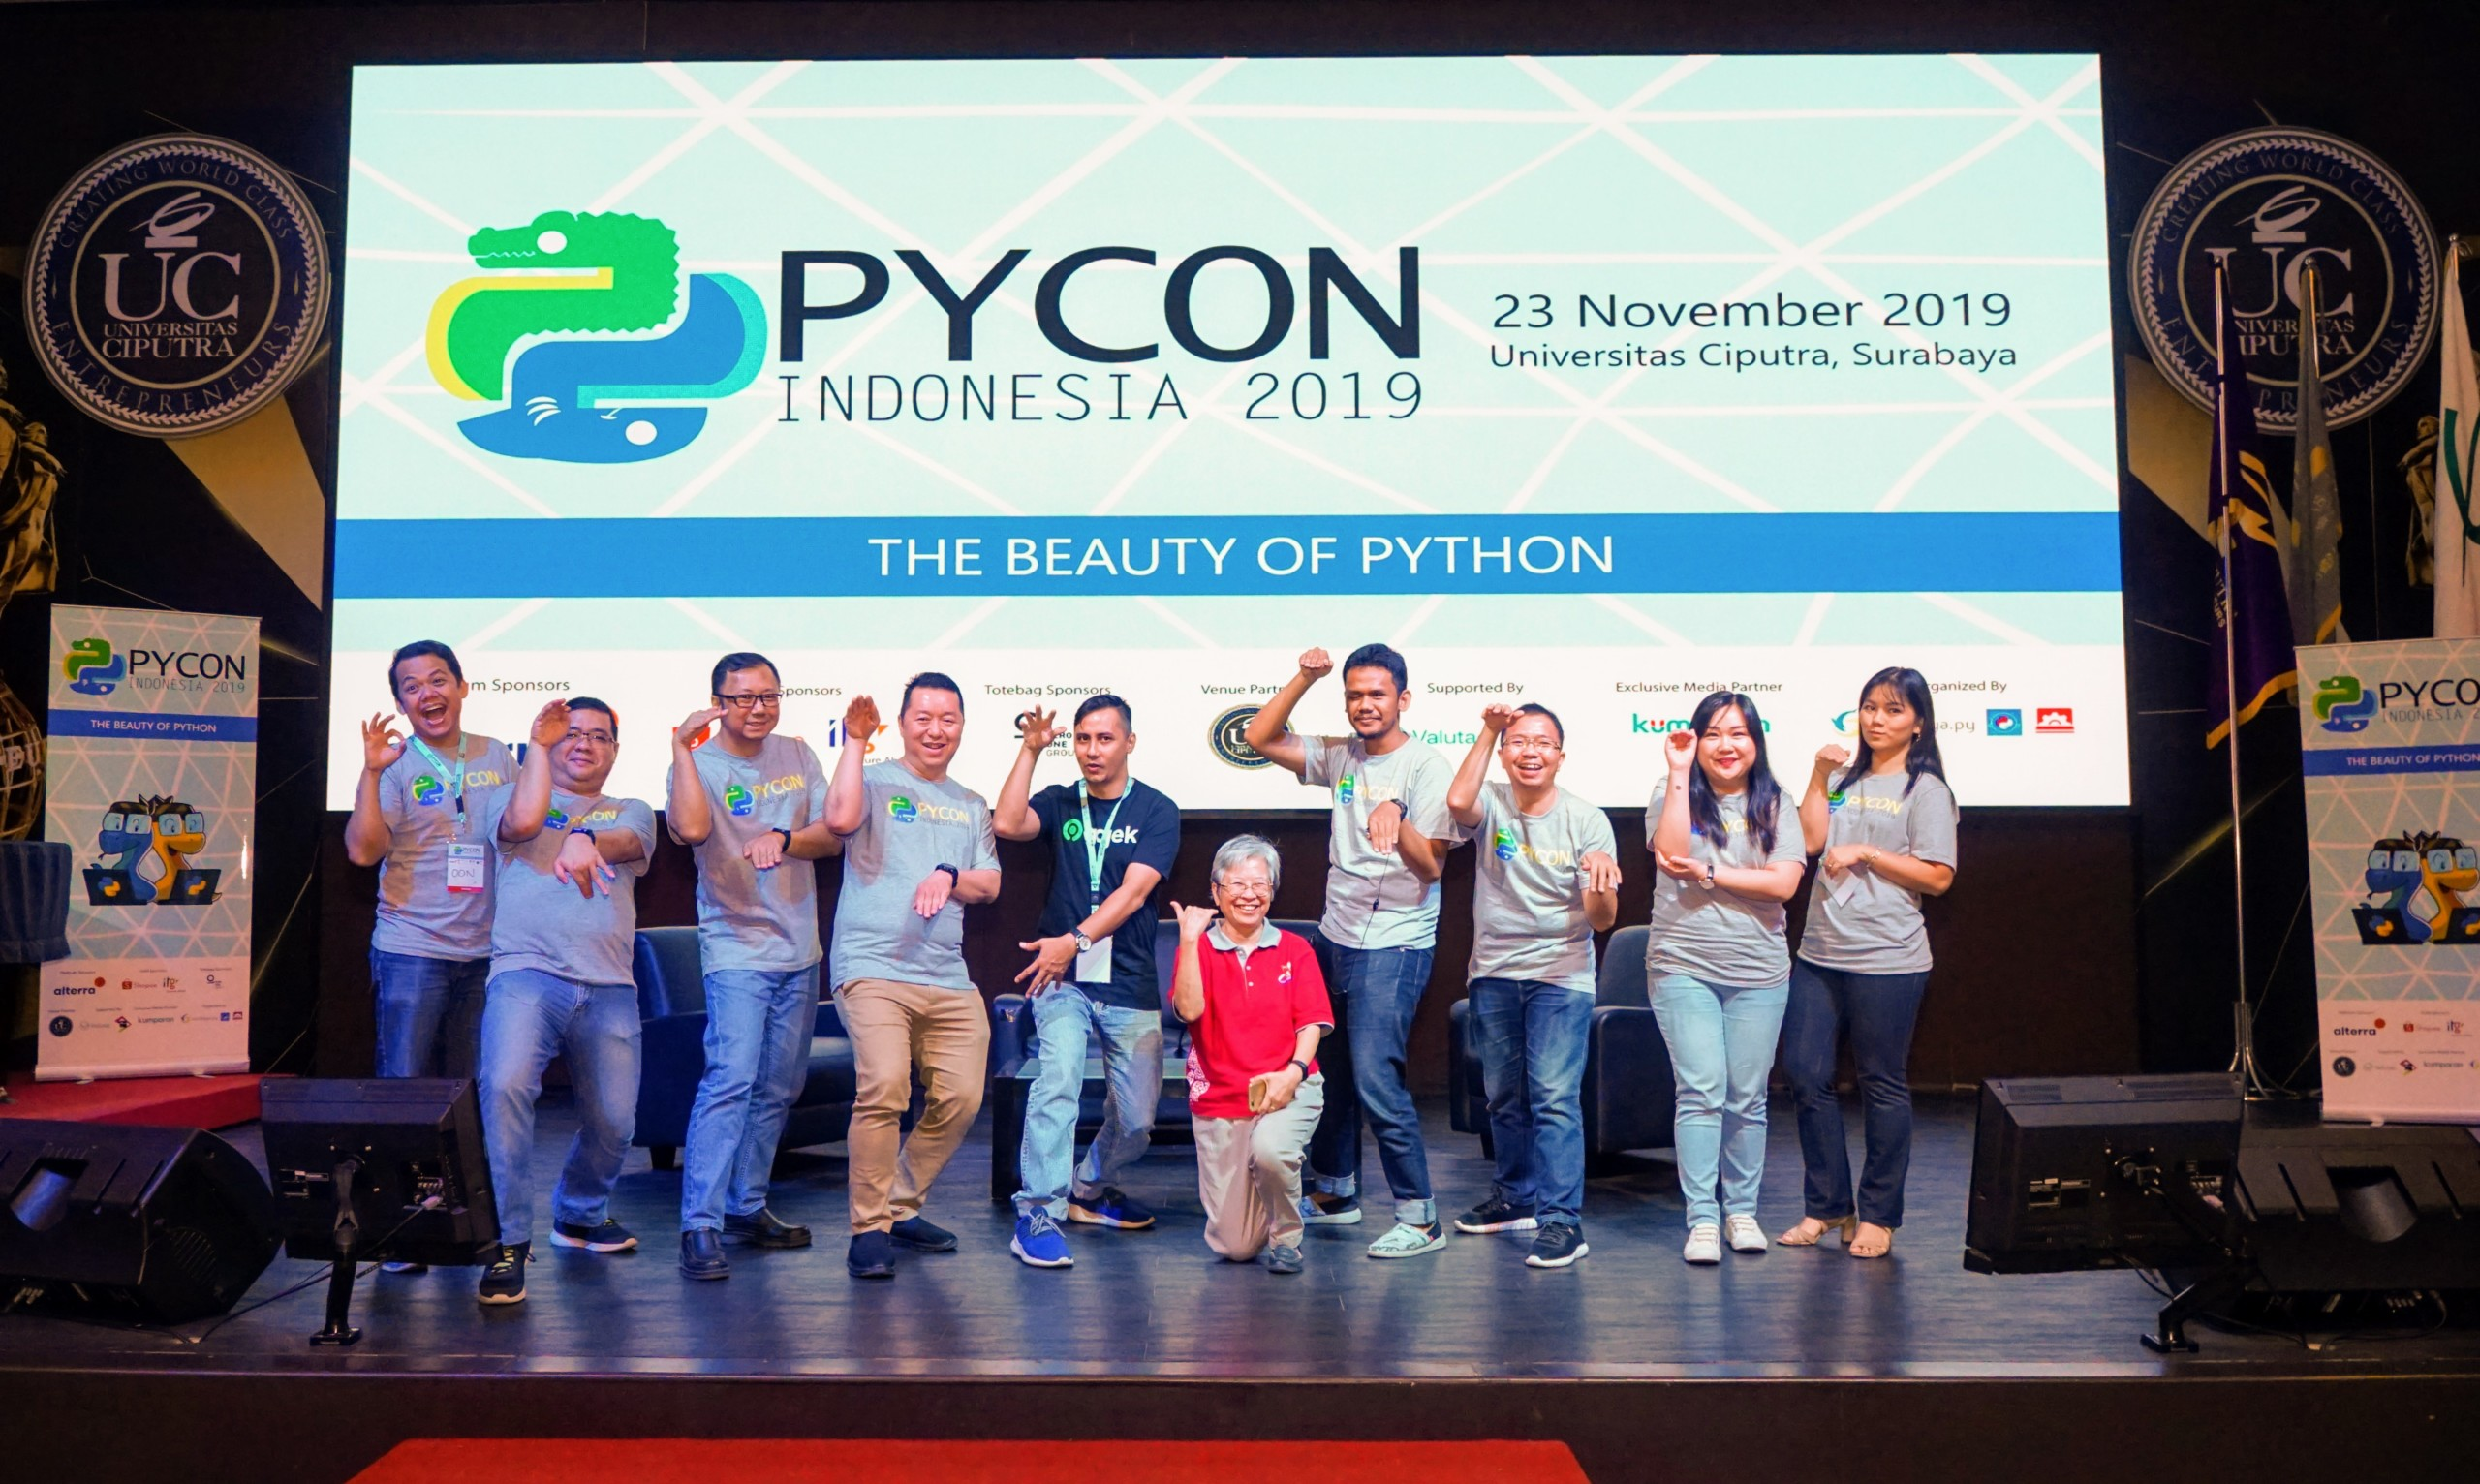 PyCon Indonesia 2019